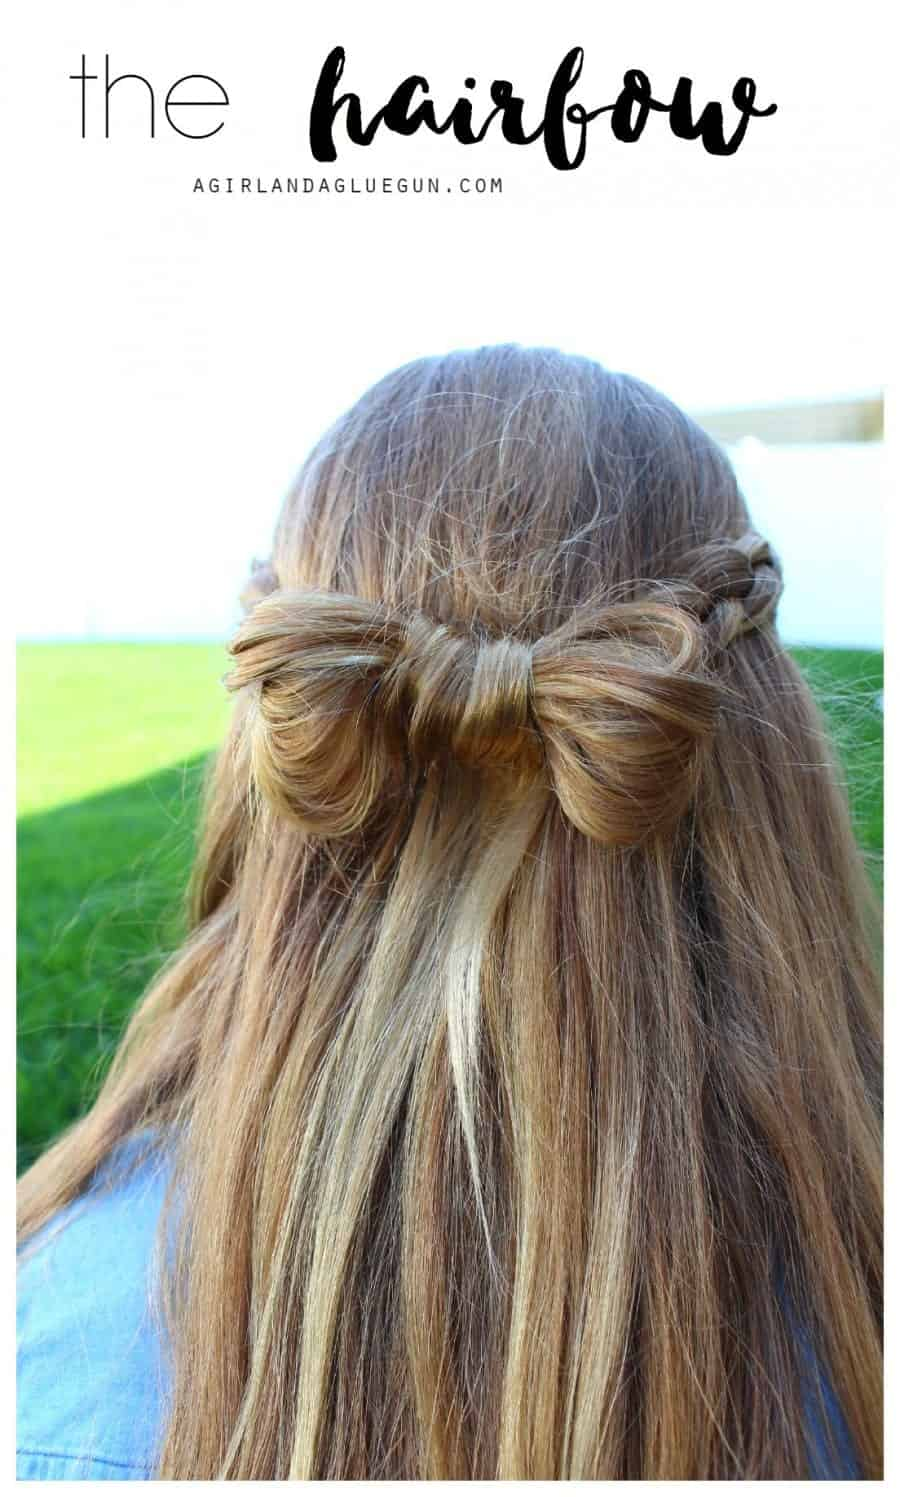 the hairbow